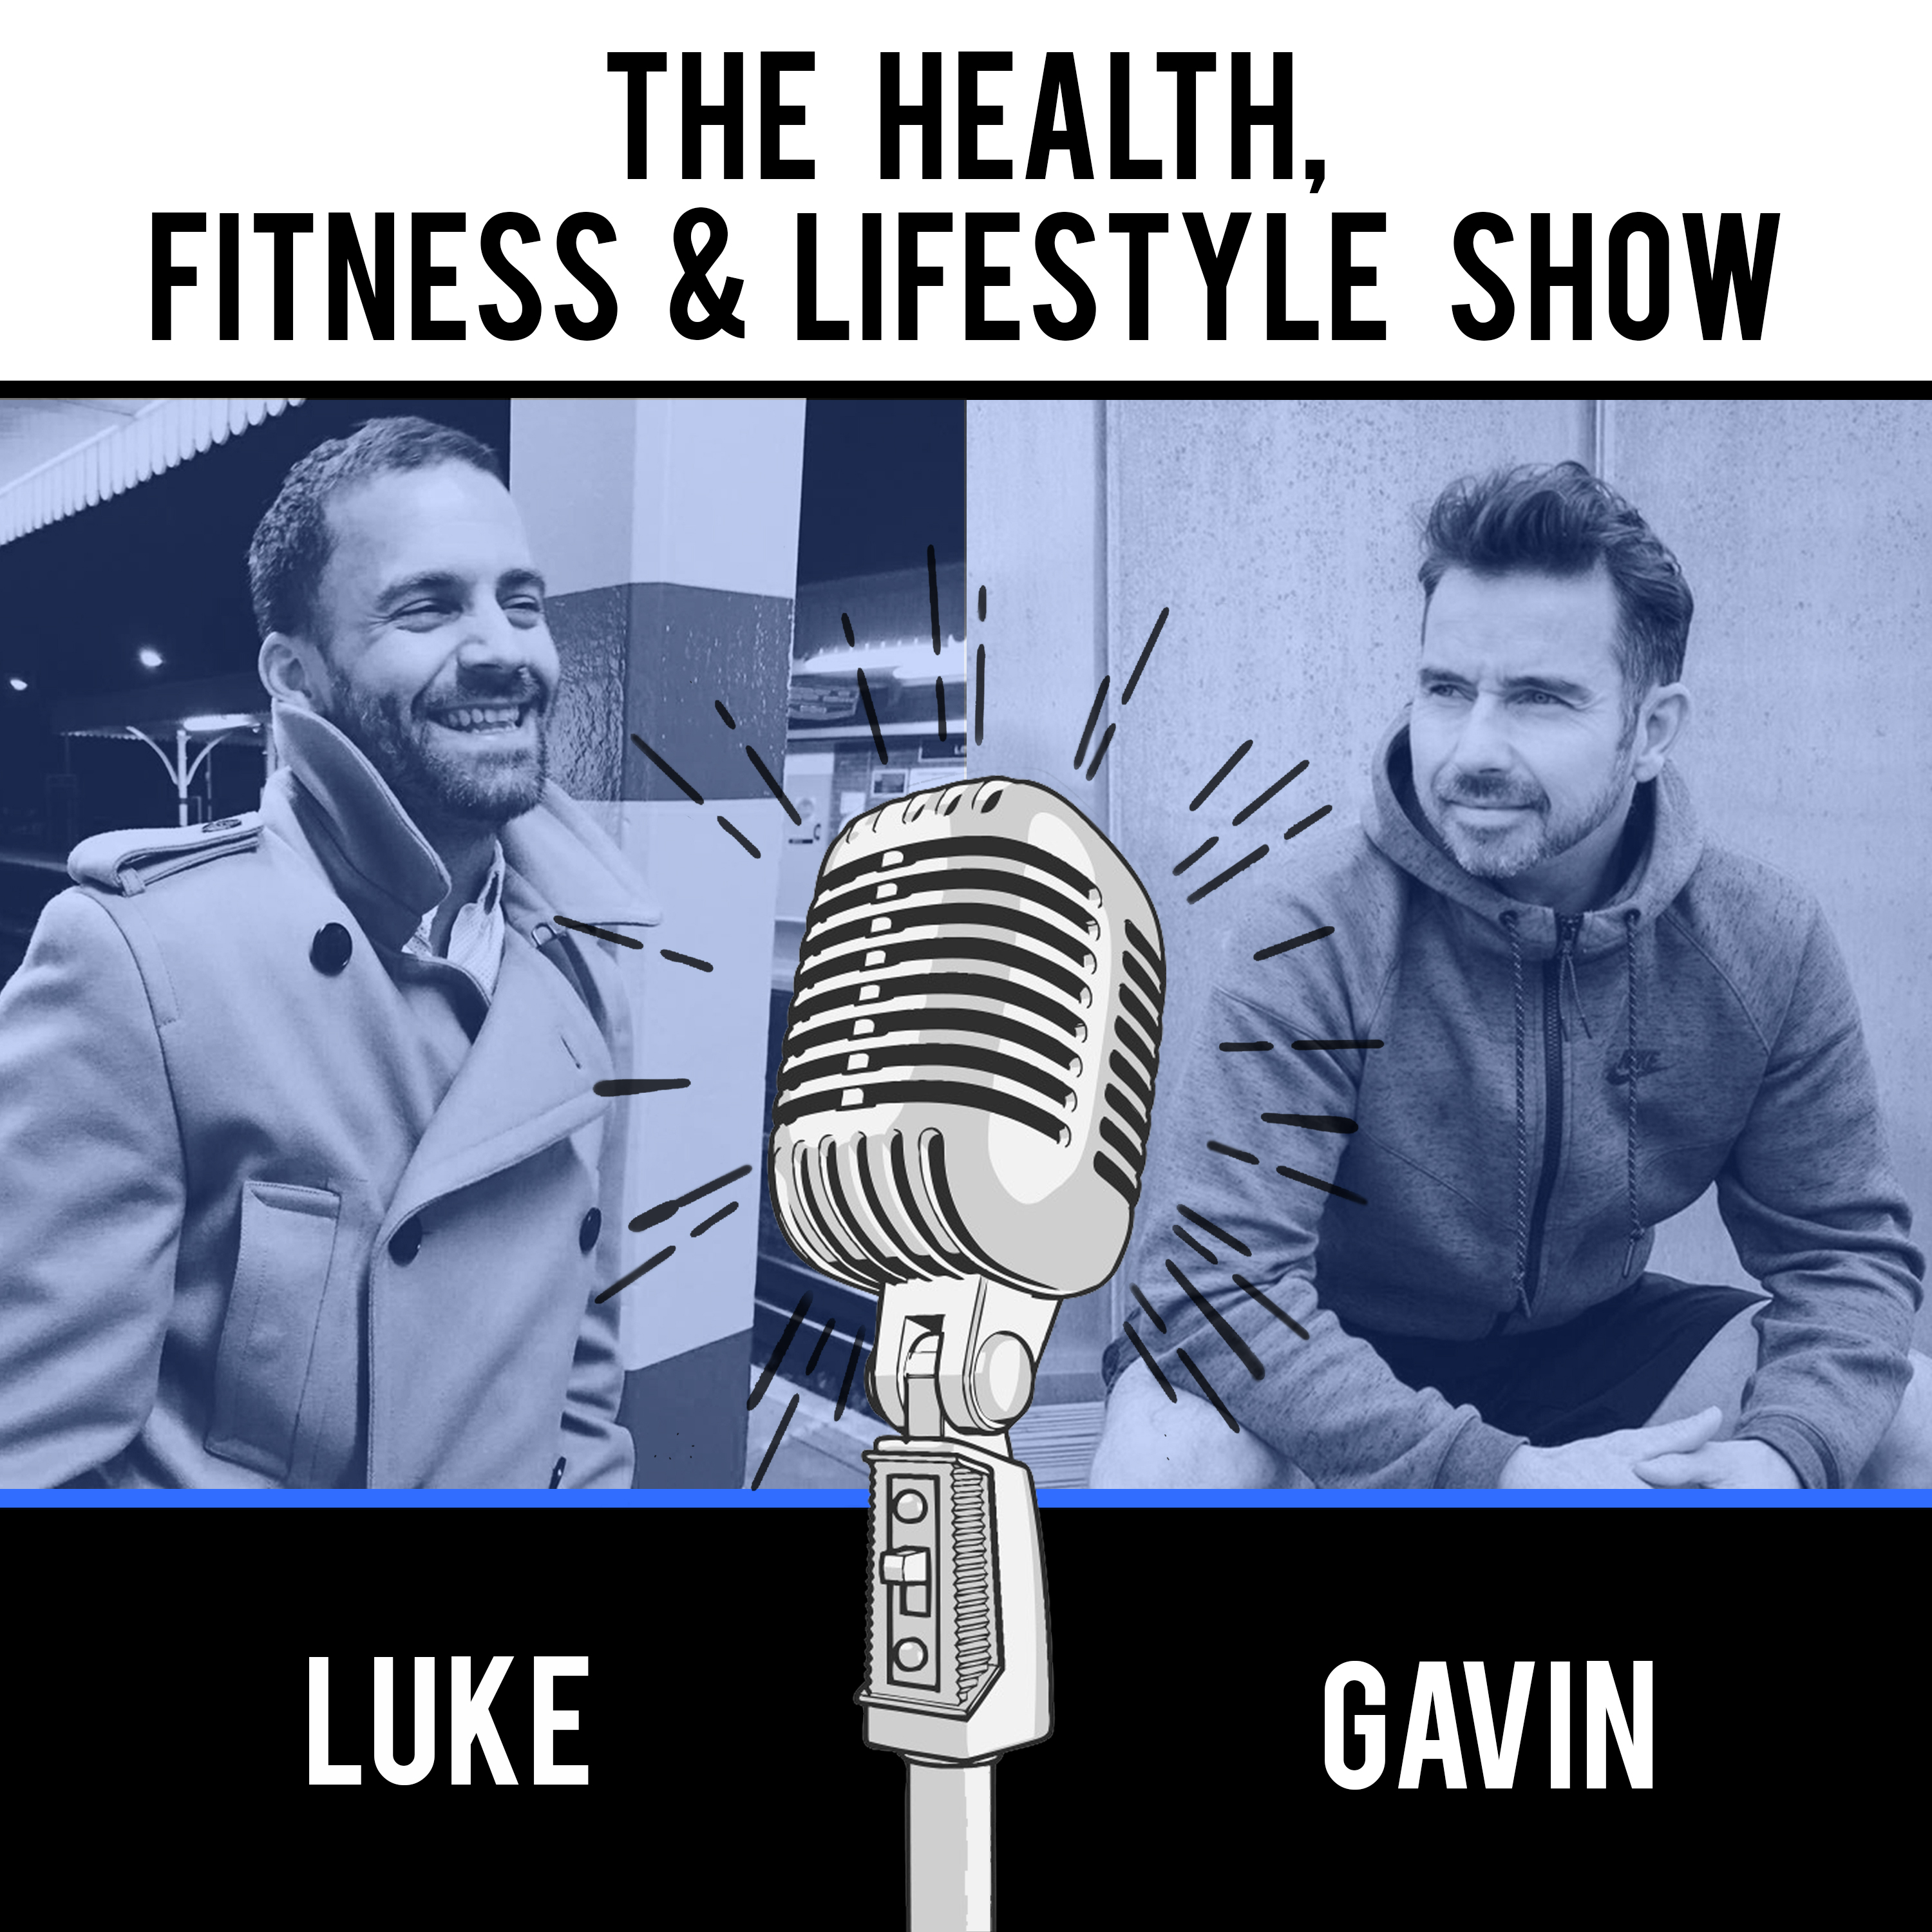 The Health, Fitness & Lifestyle Show show art